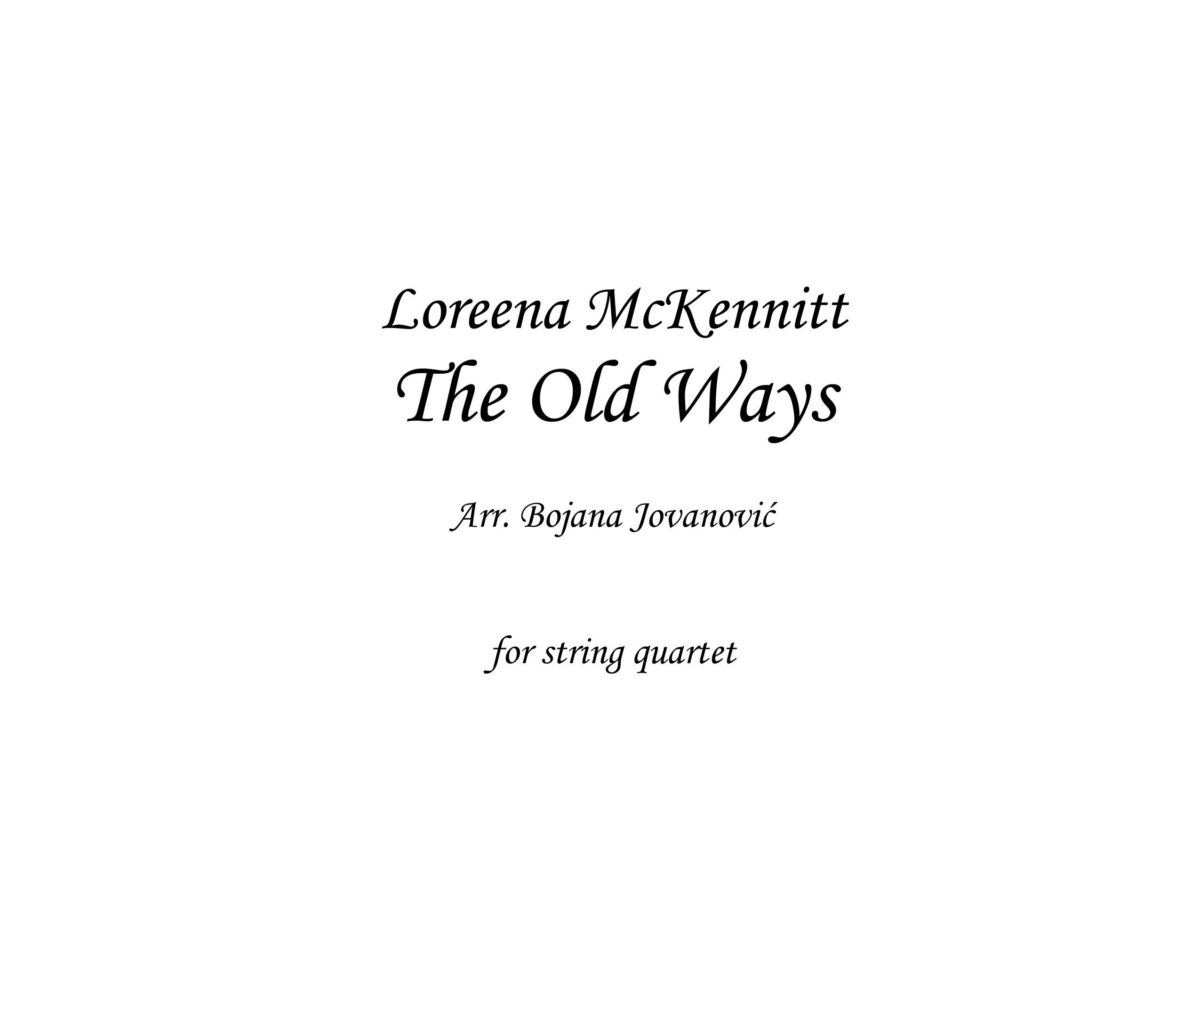 The Old Ways (Loreena McKennitt) - Sheet Music